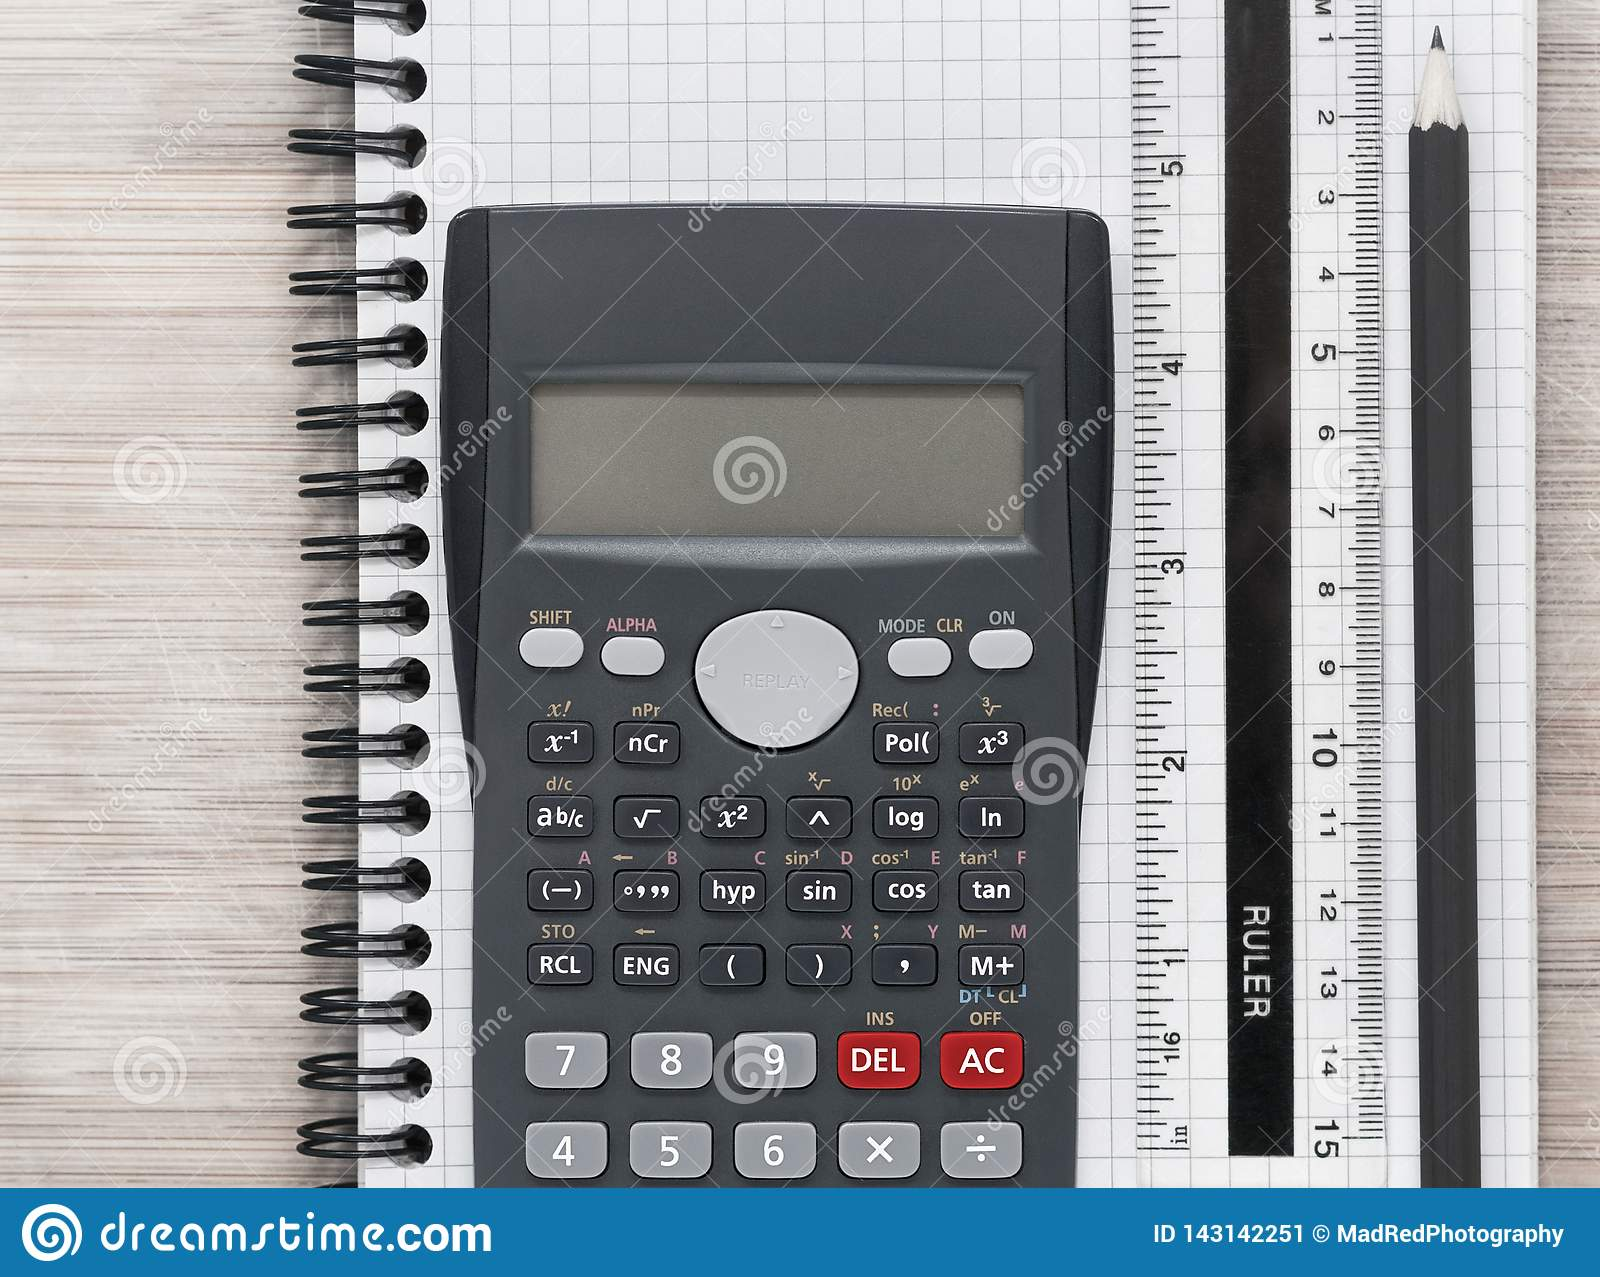 Desk flat lay with calculator, ruler and pencil on a notebook